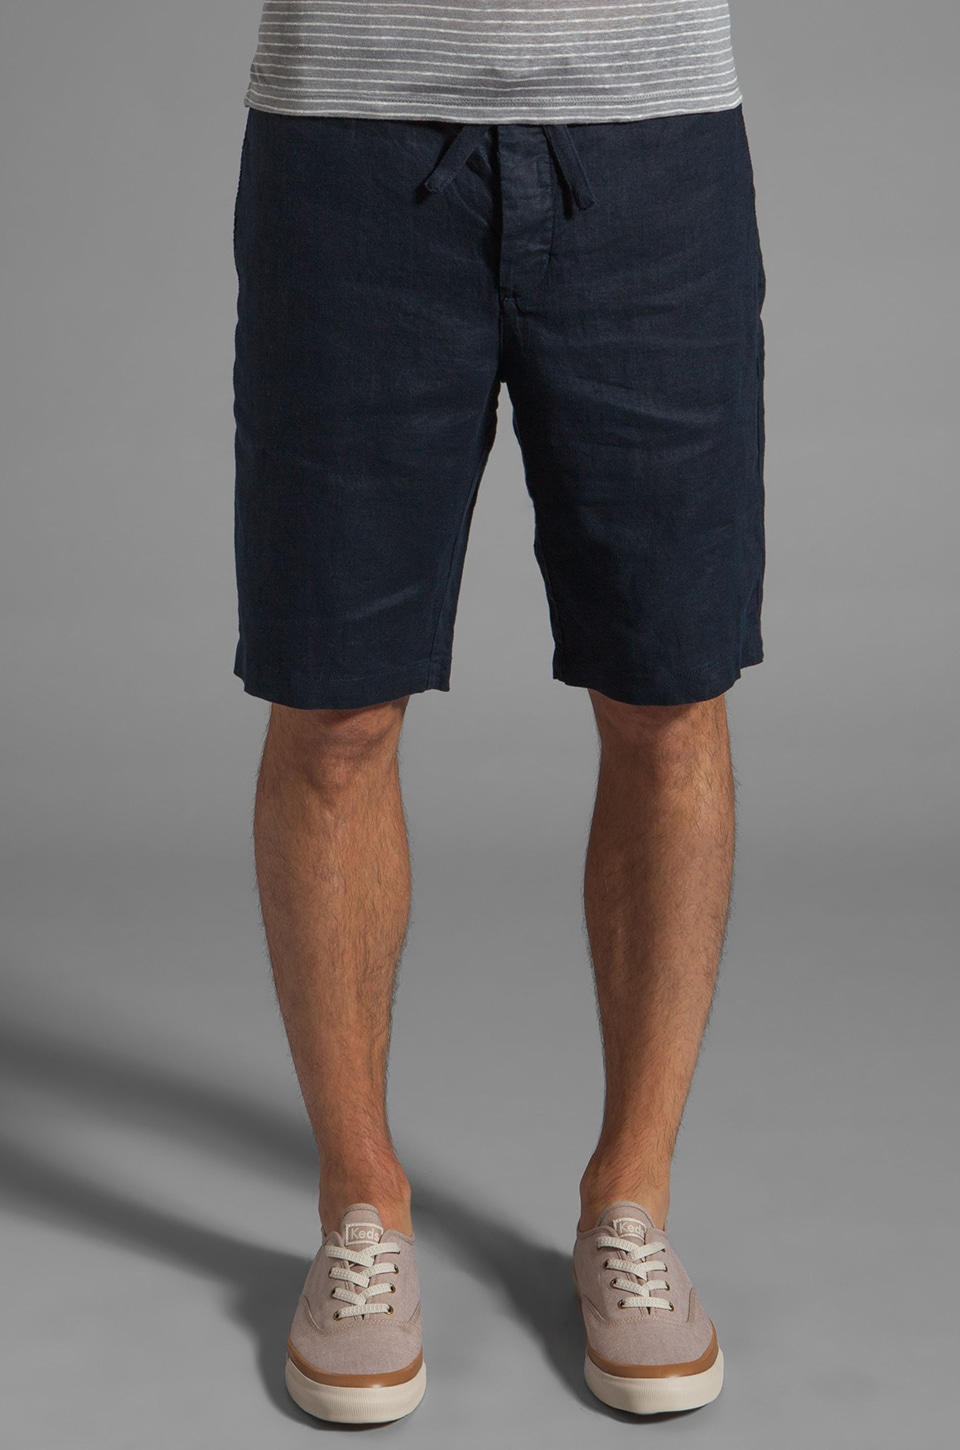 Vince Linen Solid Short in Coastal